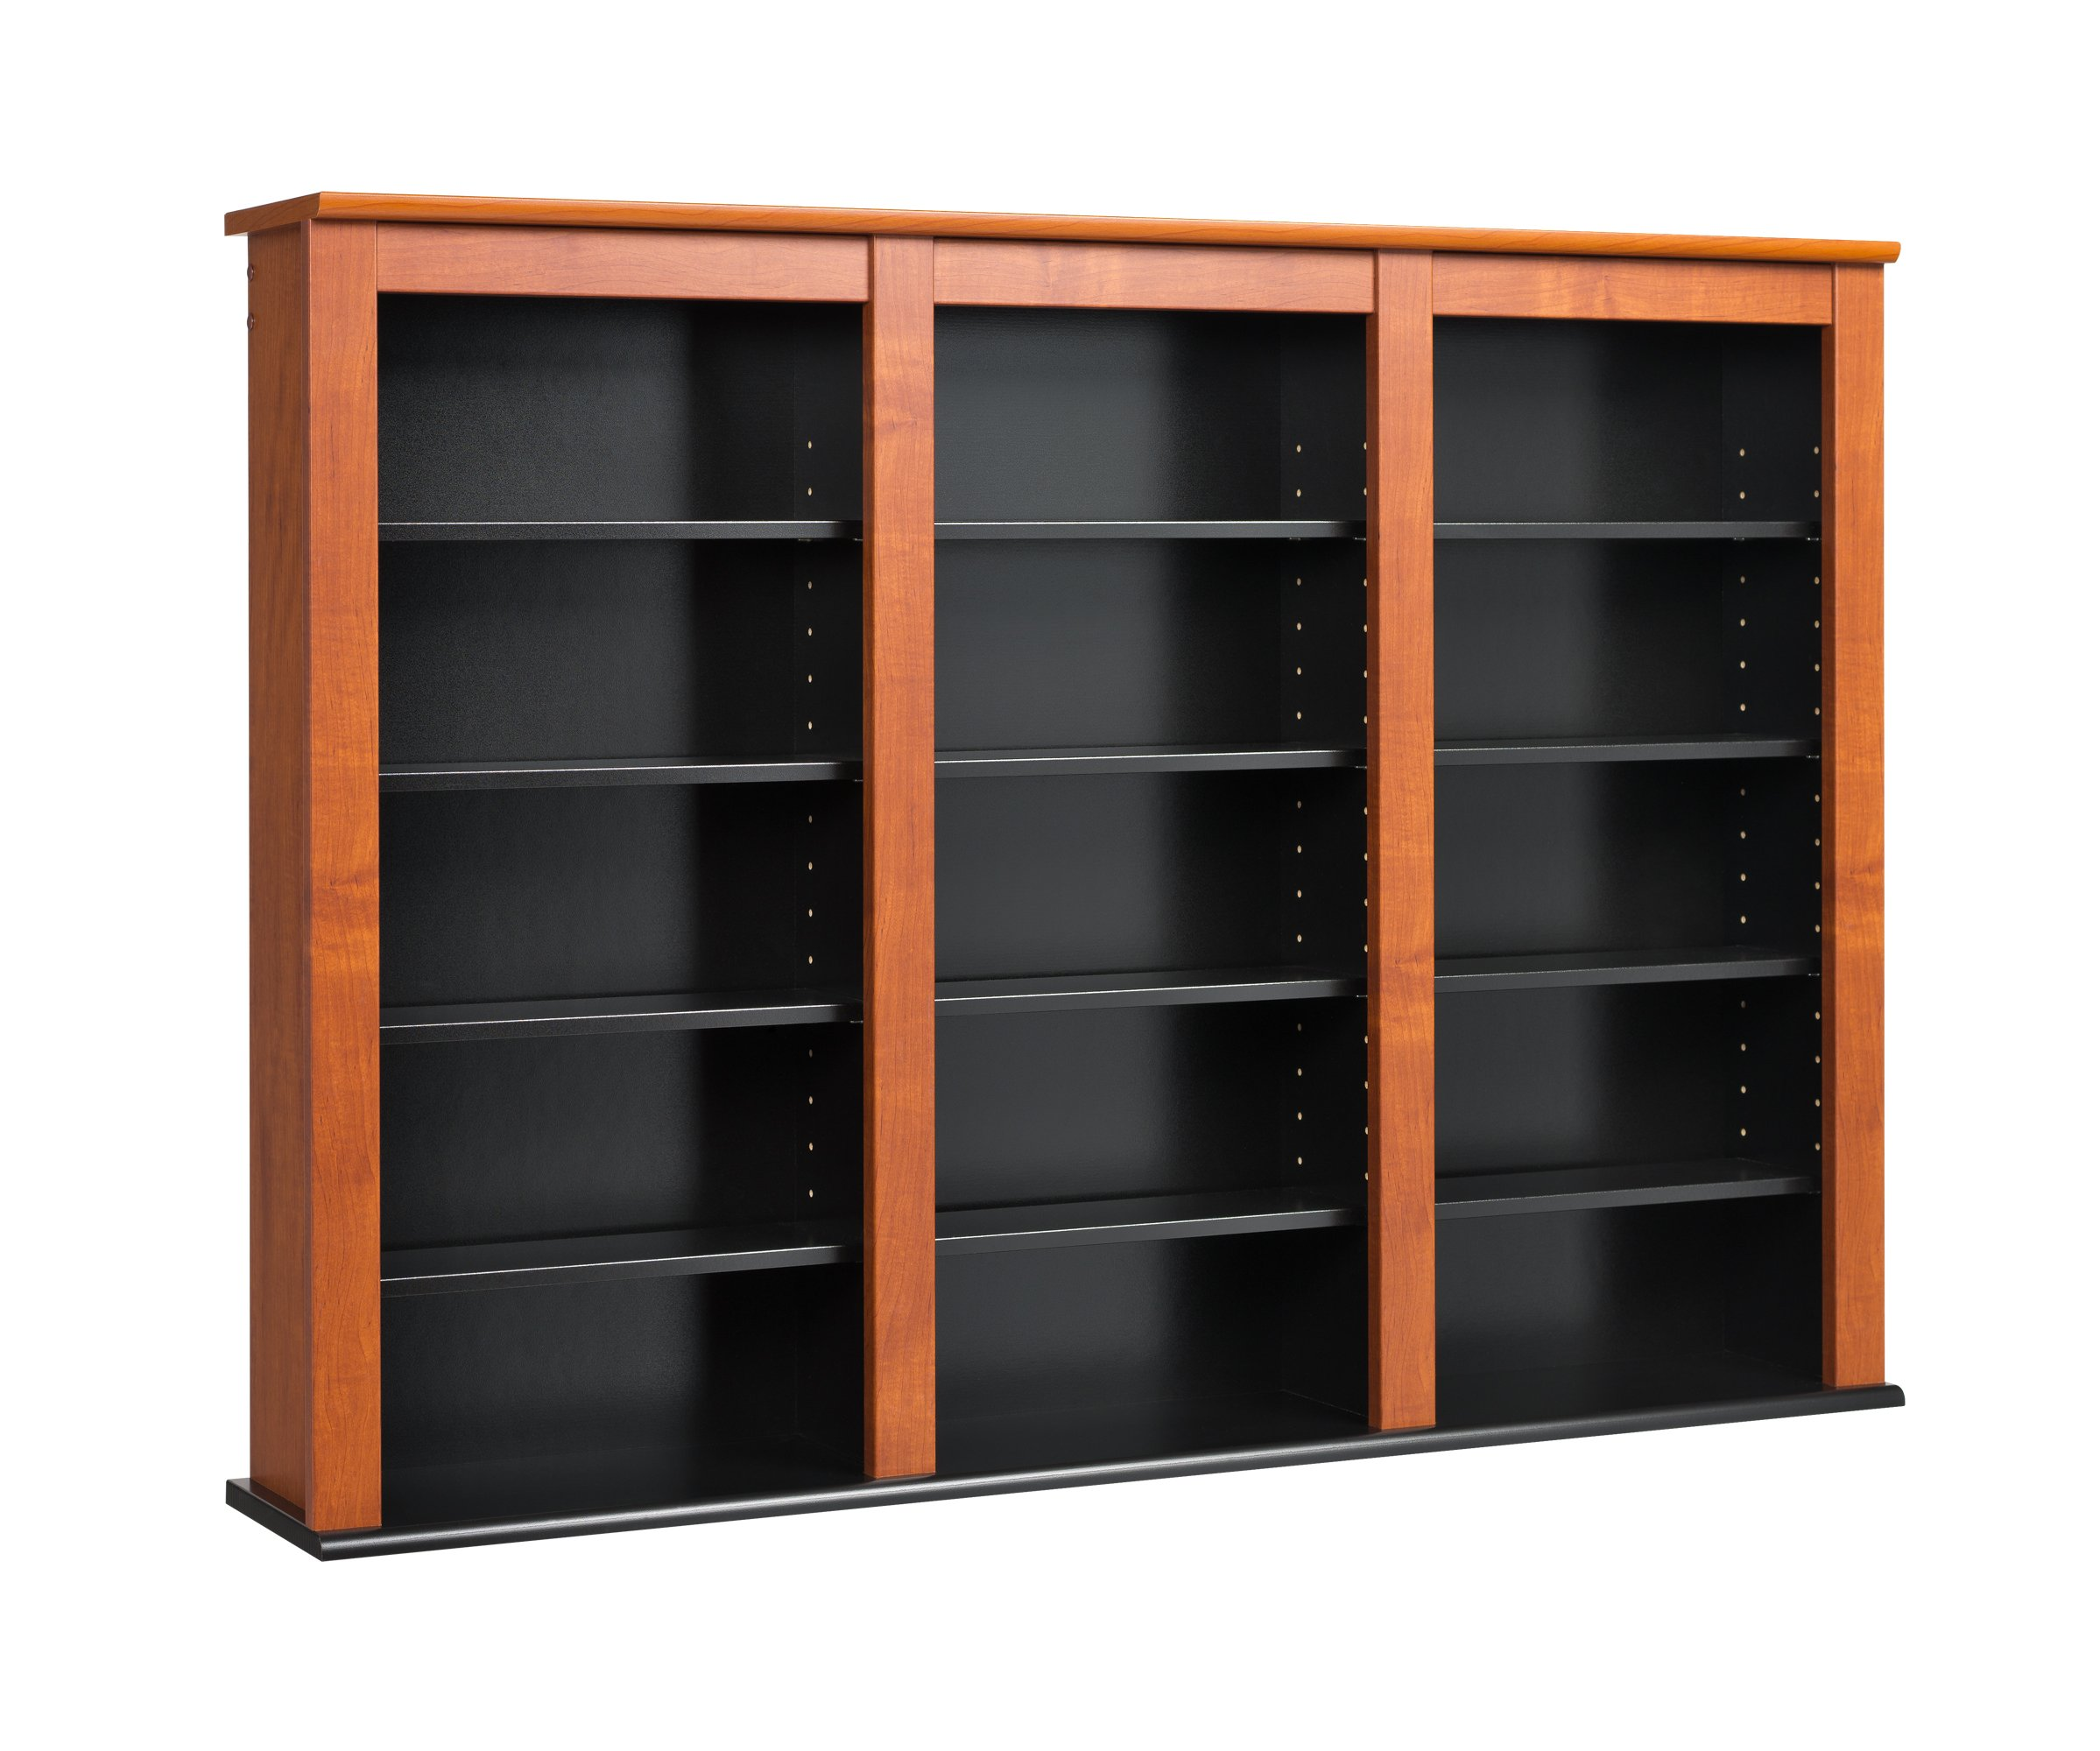 Prepac Triple Wall Mounted  Storage Cabinet, Cherry and Black